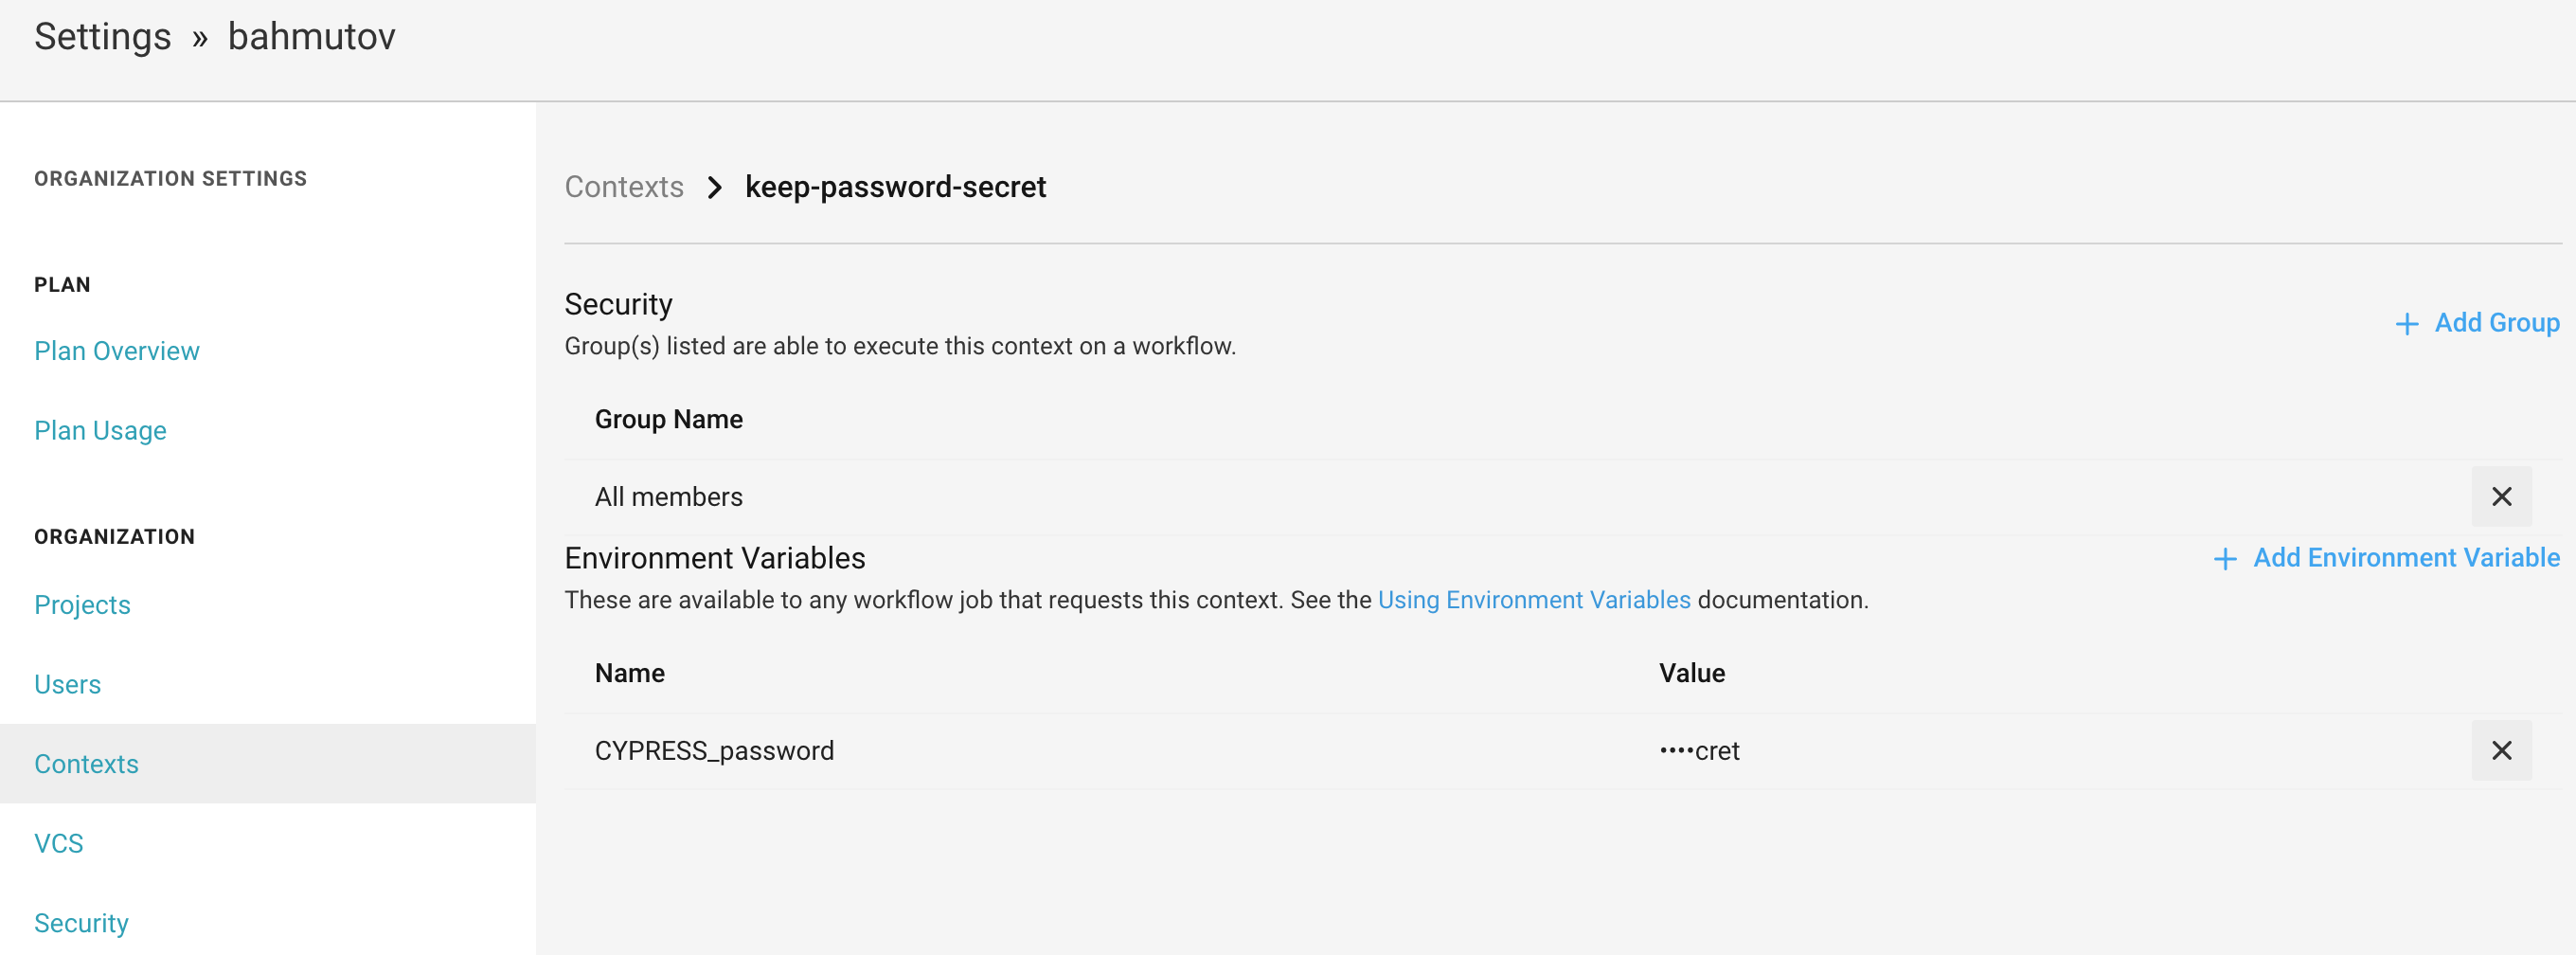 Created security context with the password environment variable